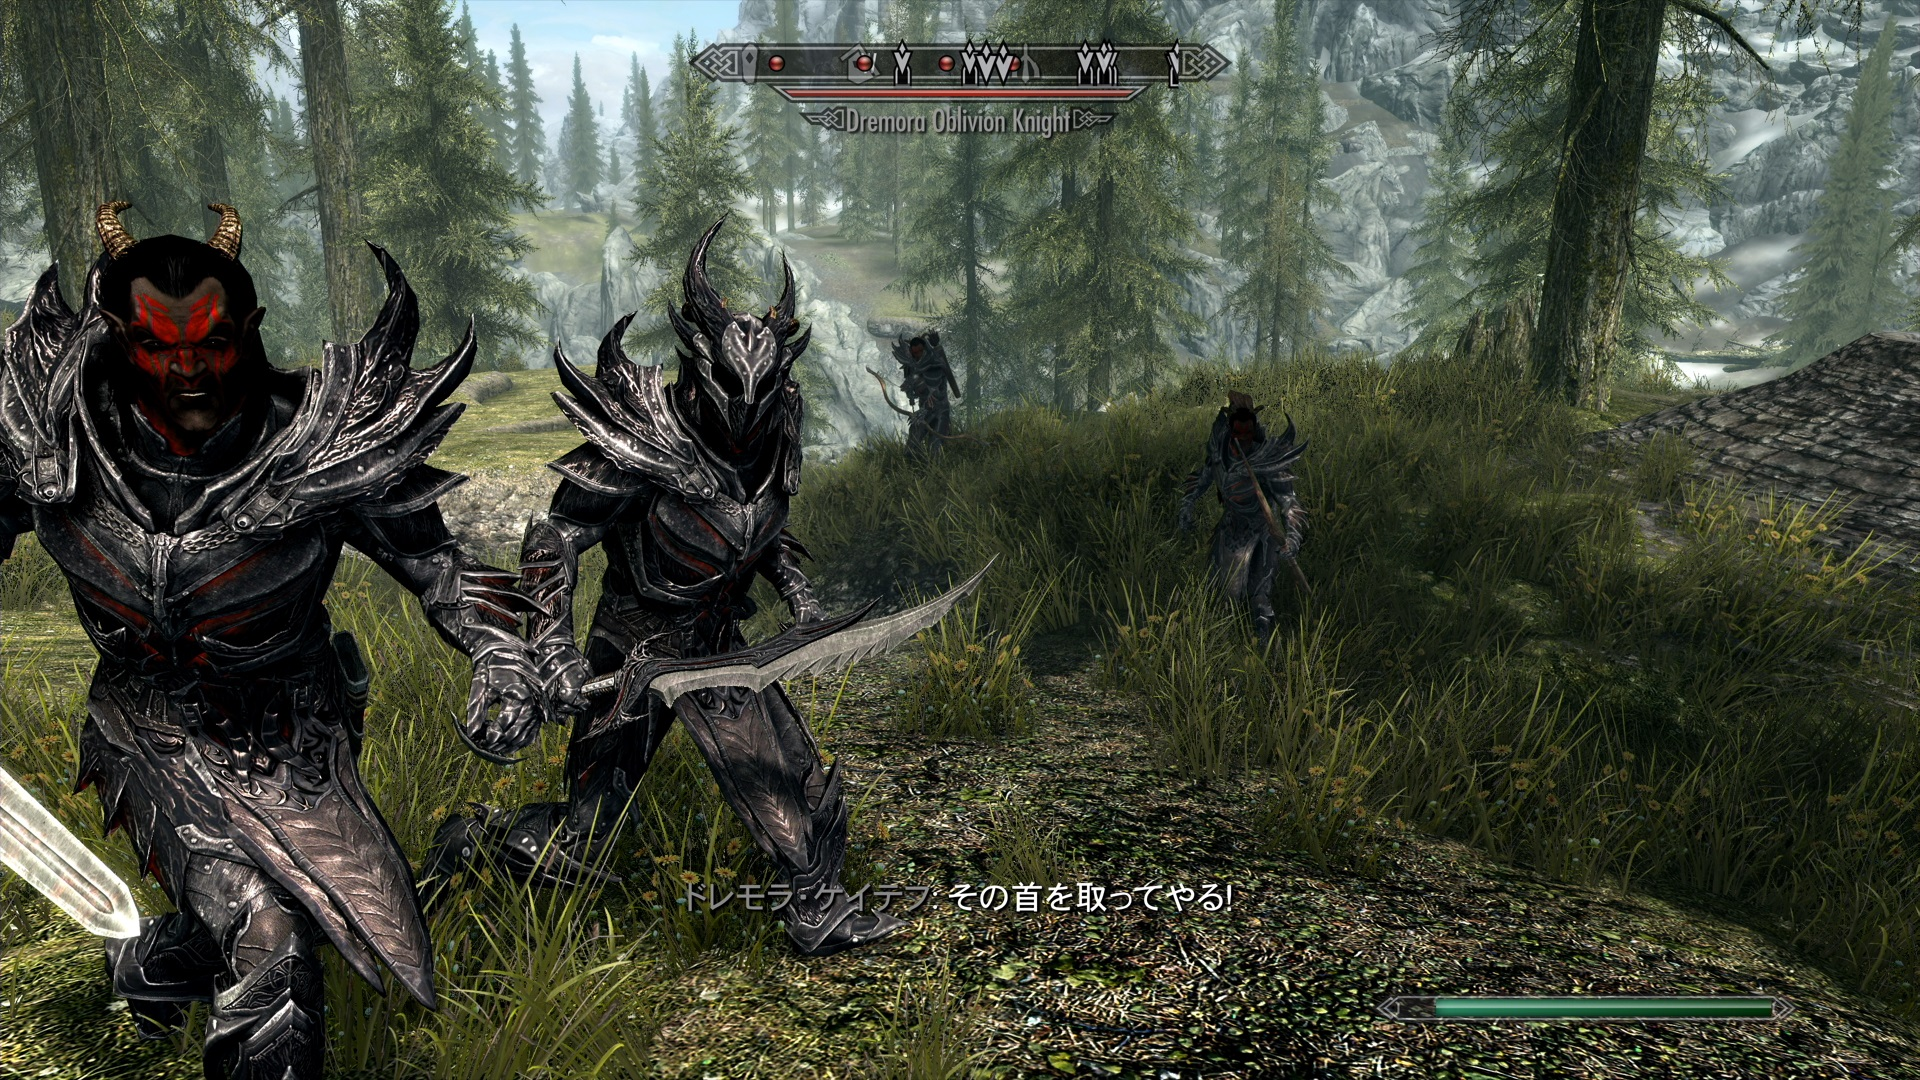 how to put mods on skyrim for ps4